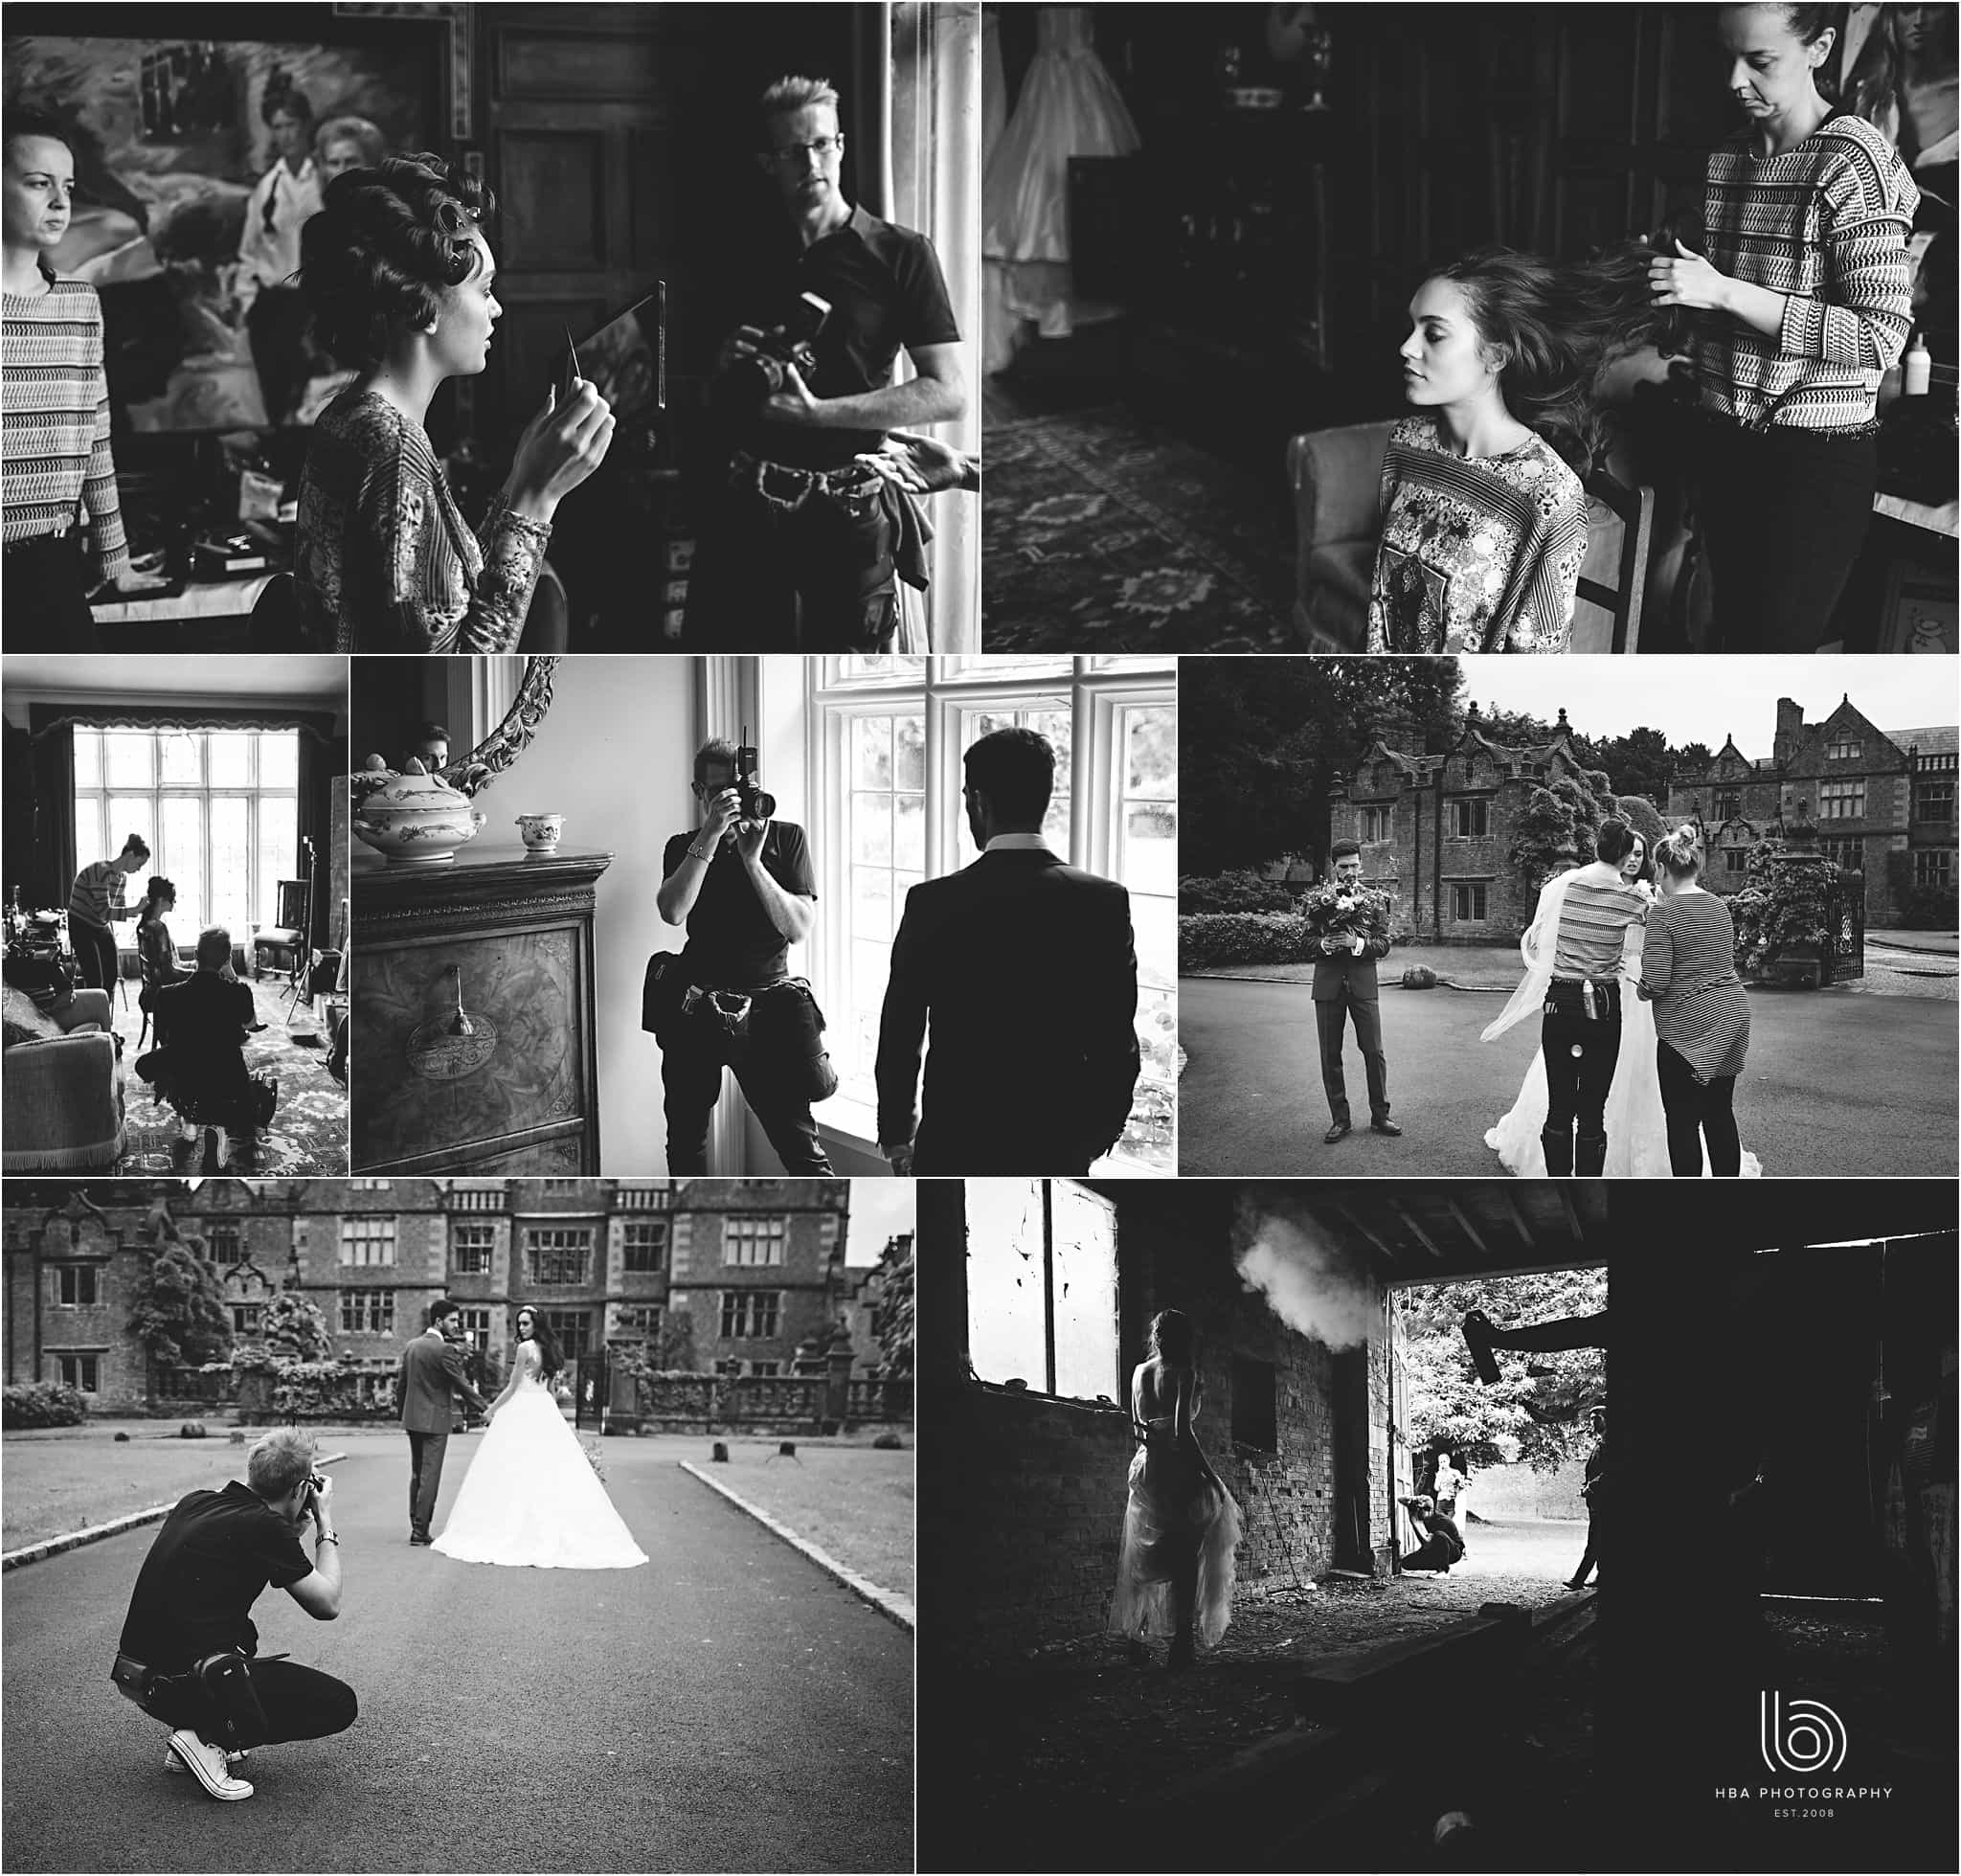 Behind the scenes details frm our wedding photos at Dorfold Hall